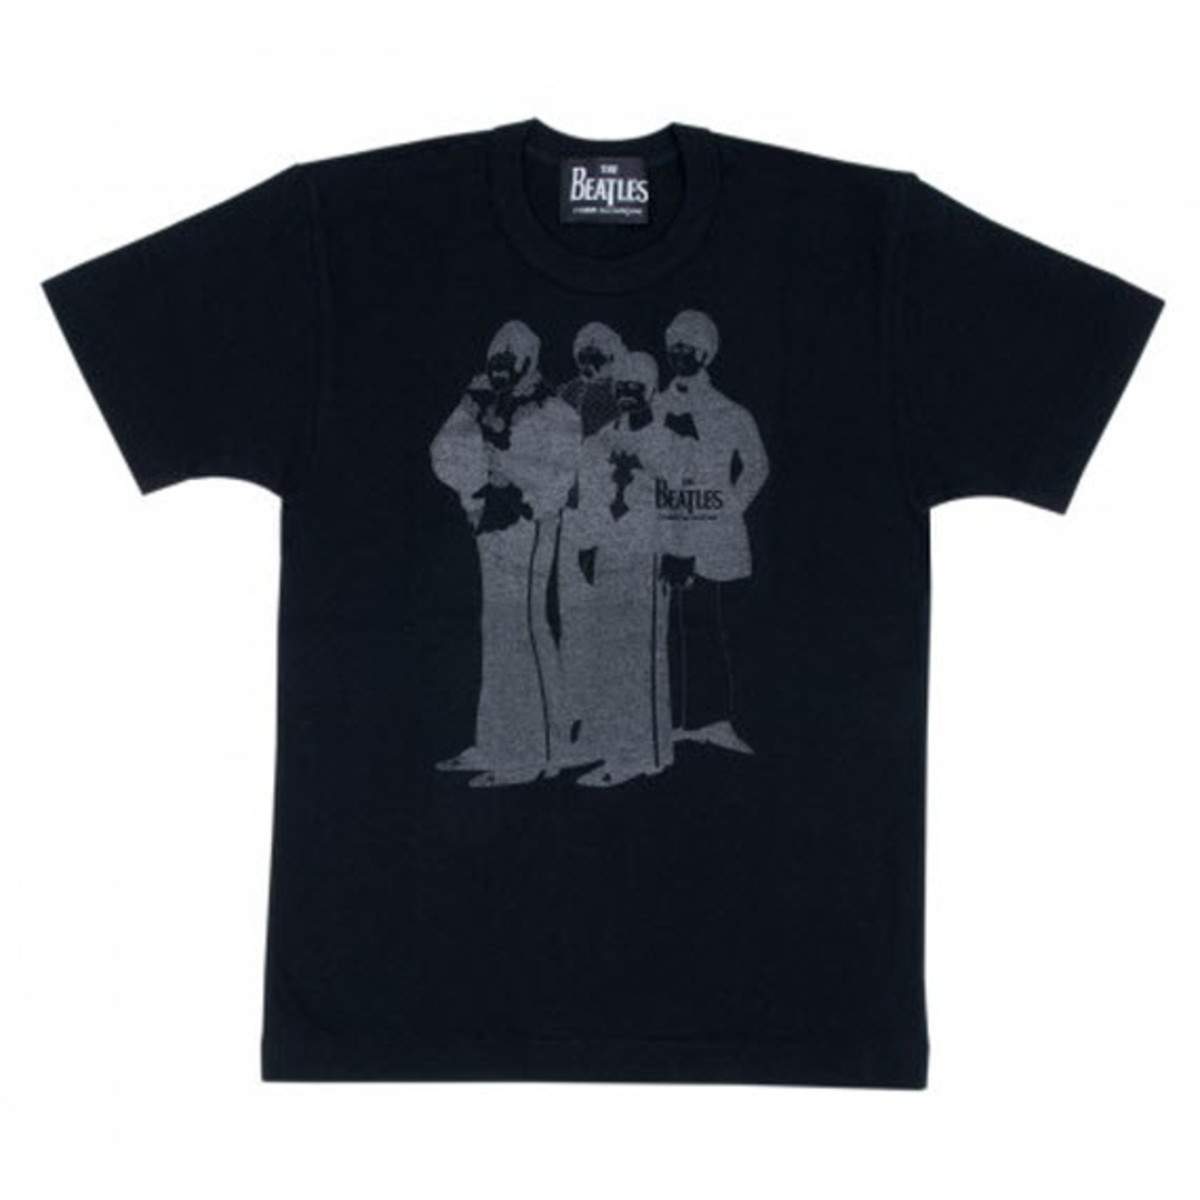 comme-des-garcons-x-the-beatles-the-beatles-springsummer-2013-capsule-collection-13